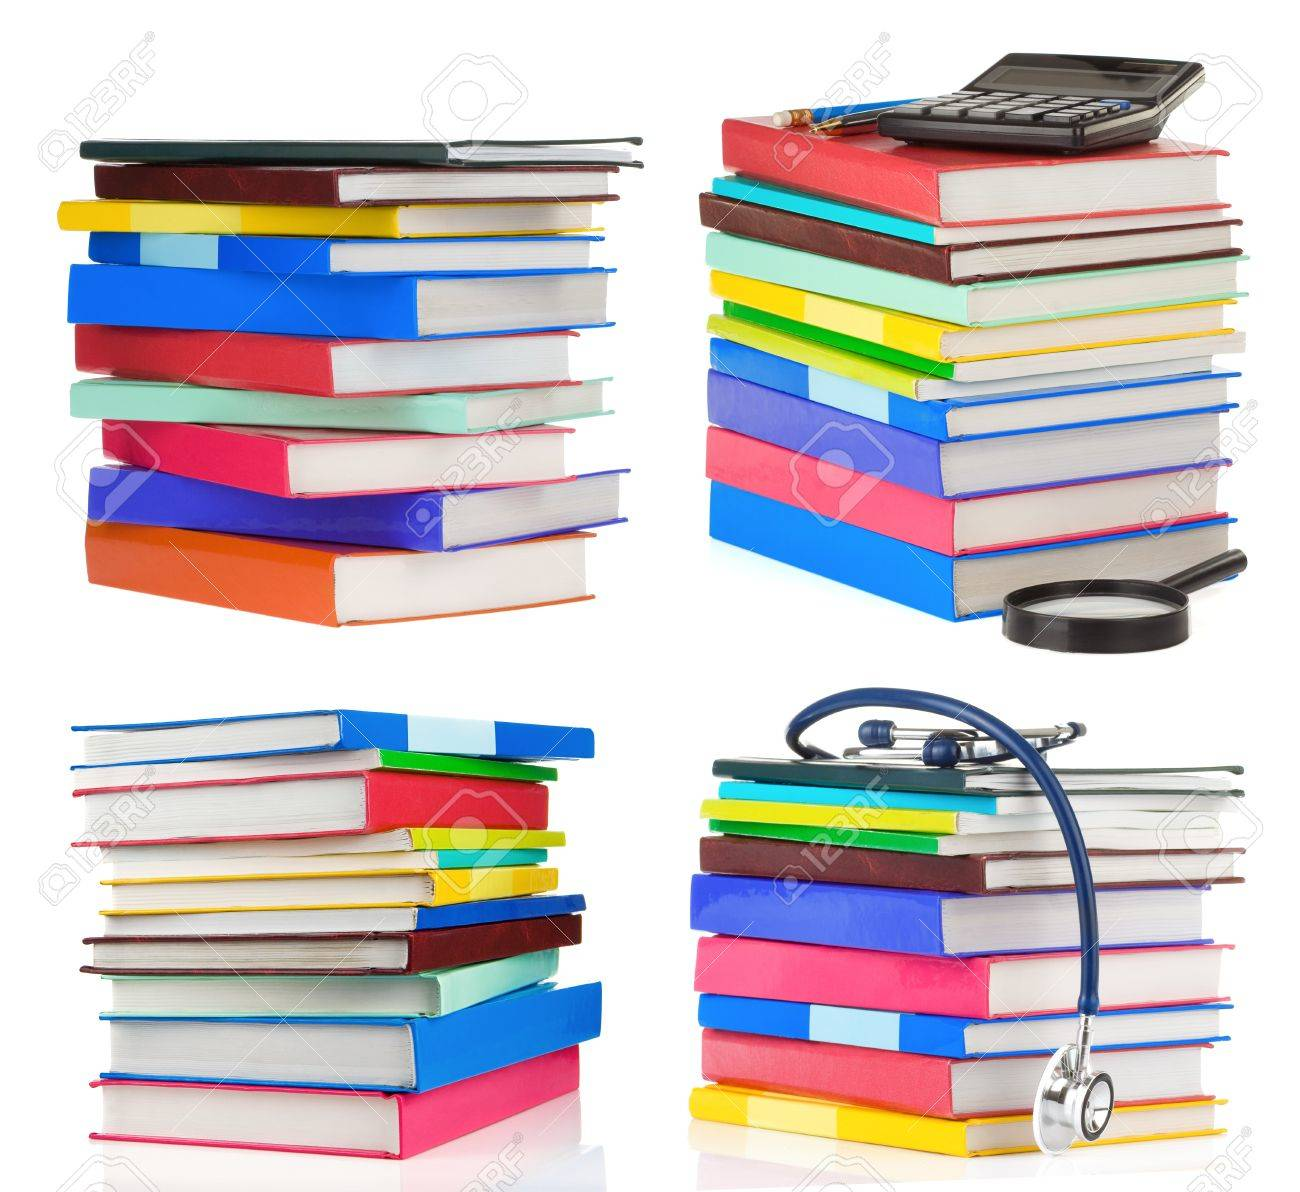 pile of books collage isolated on white background Stock Photo - 12411036